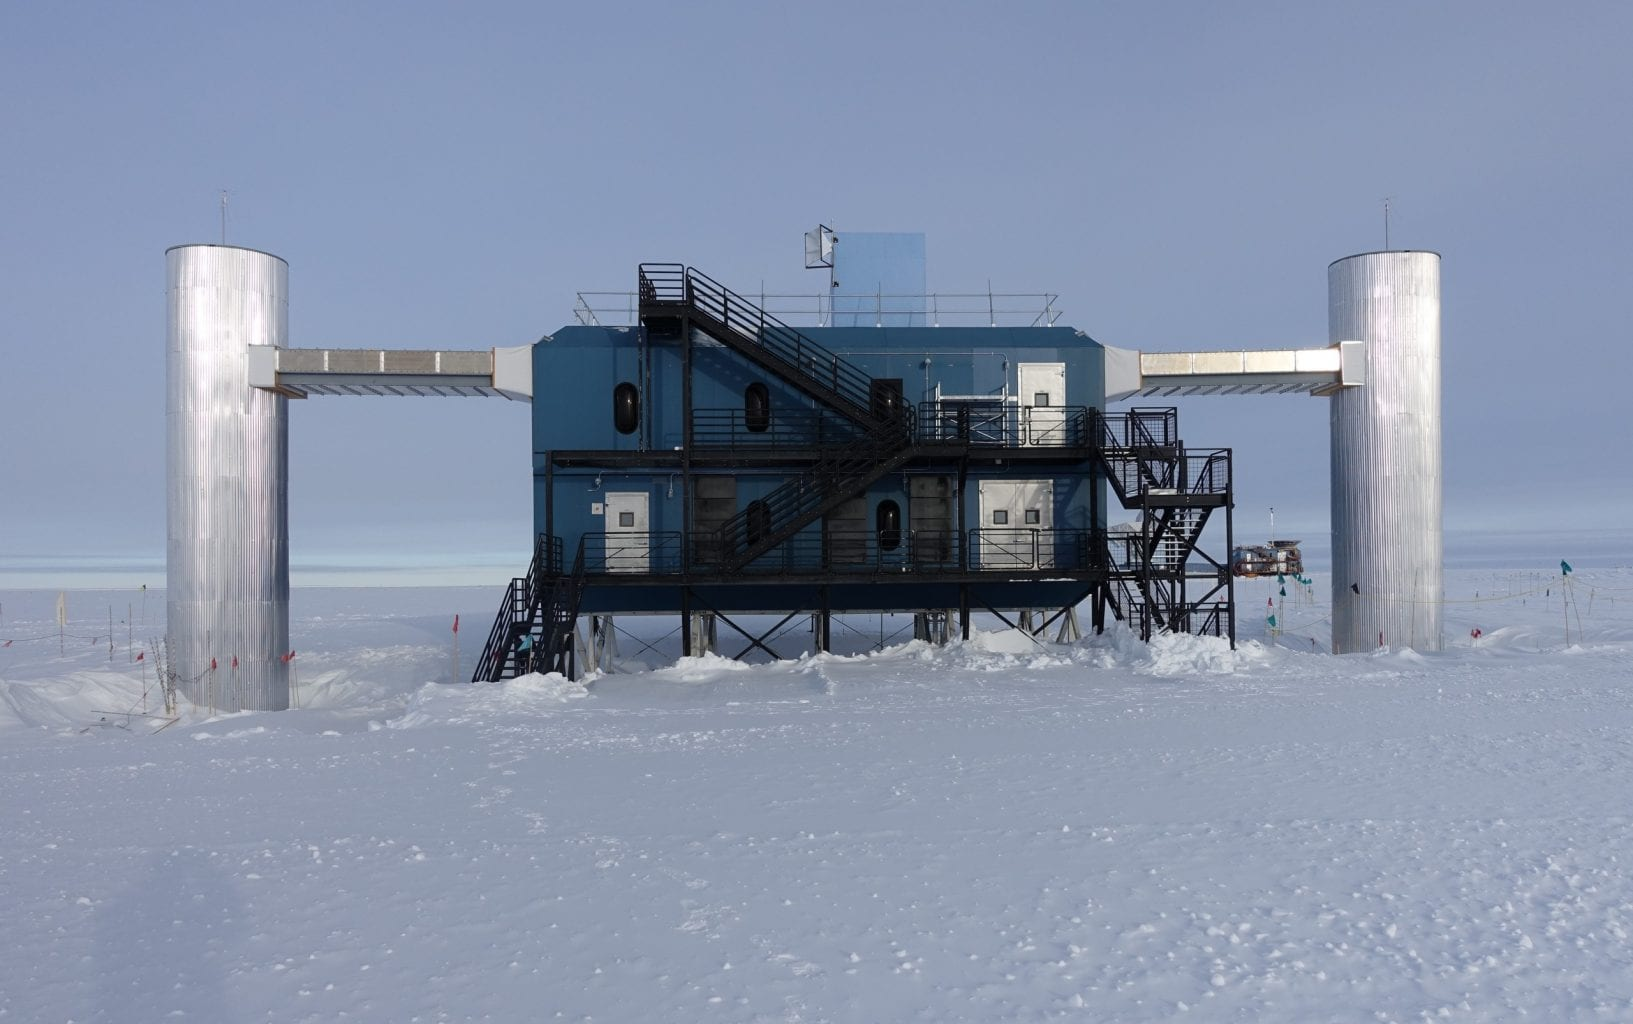 This is the IceCube Laboratory in Antarctica that collected the important data of the event caused by a cosmic particle. Credit: ICECUBE Collaboration